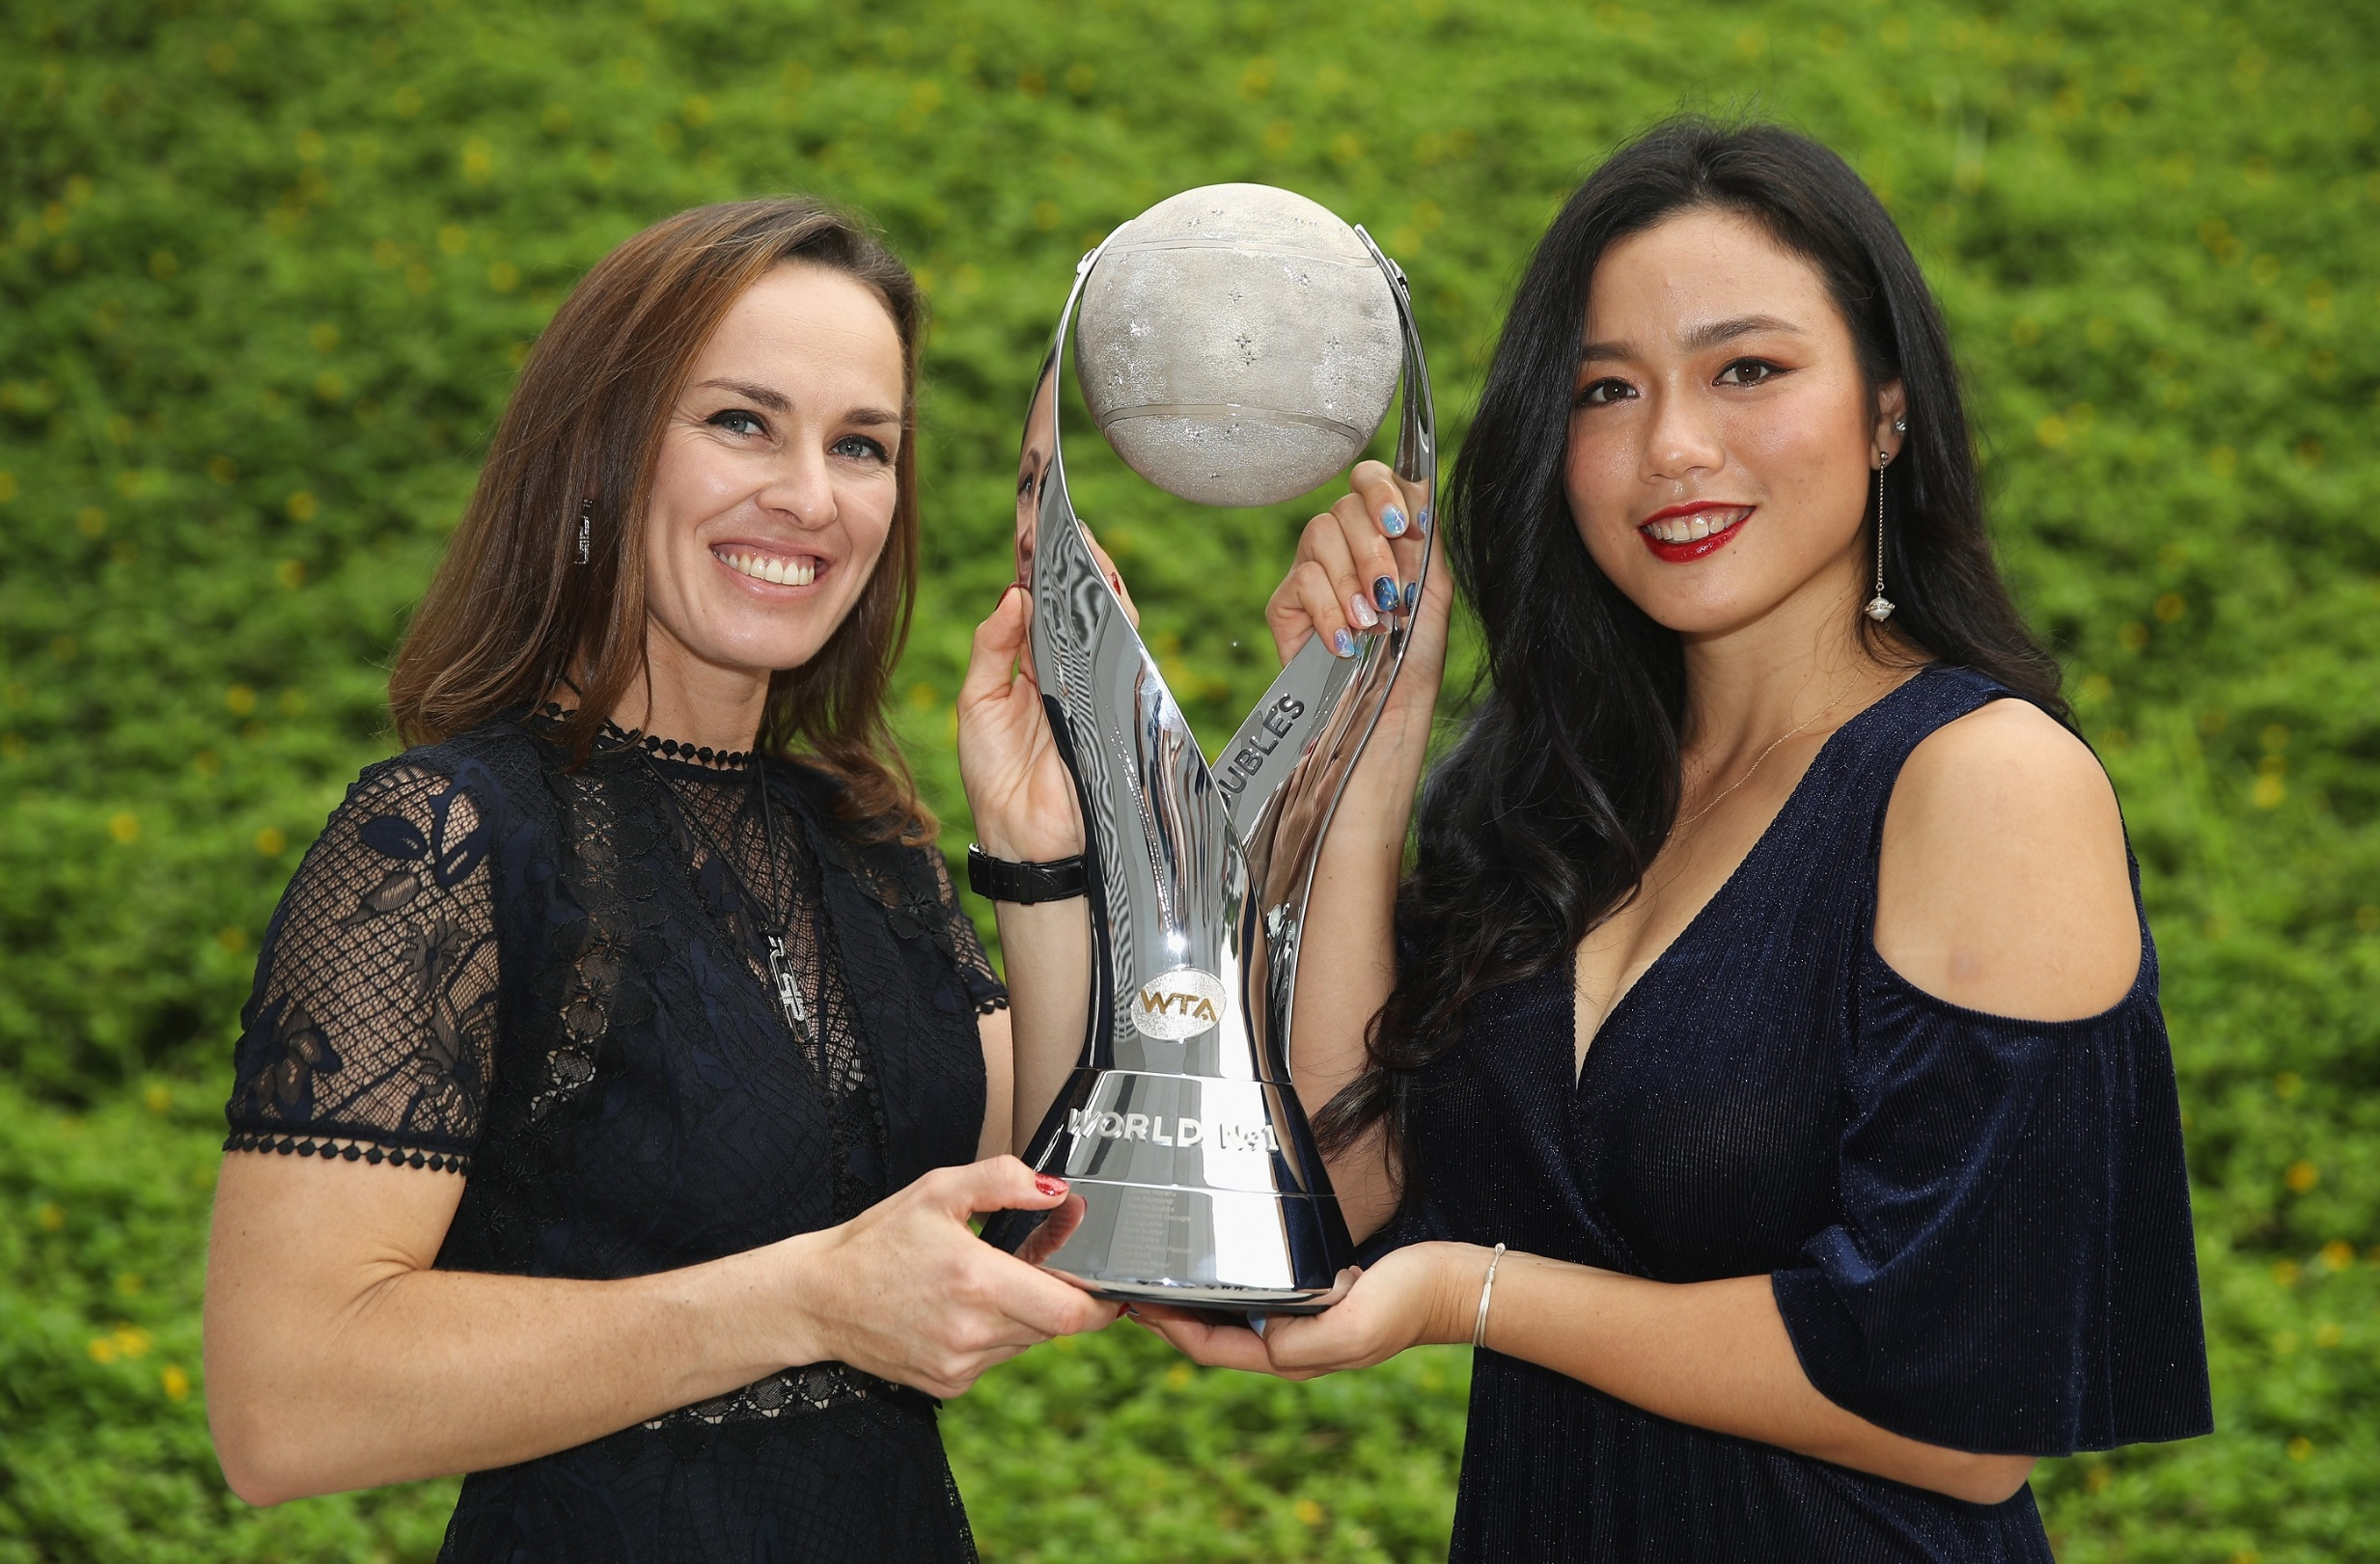 SINGAPORE - OCTOBER 24:  Martina Hingis (L) of Switzerland and Chan Yung-Jan of Chinese Taipei pose with the WTA World No.1 Doubles trophy during day 3 of the BNP Paribas WTA Finals Singapore presented by SC Global at Singapore Sports Hub on October 24, 2017 in Singapore.  (Photo by Julian Finney/Getty Images for WTA)